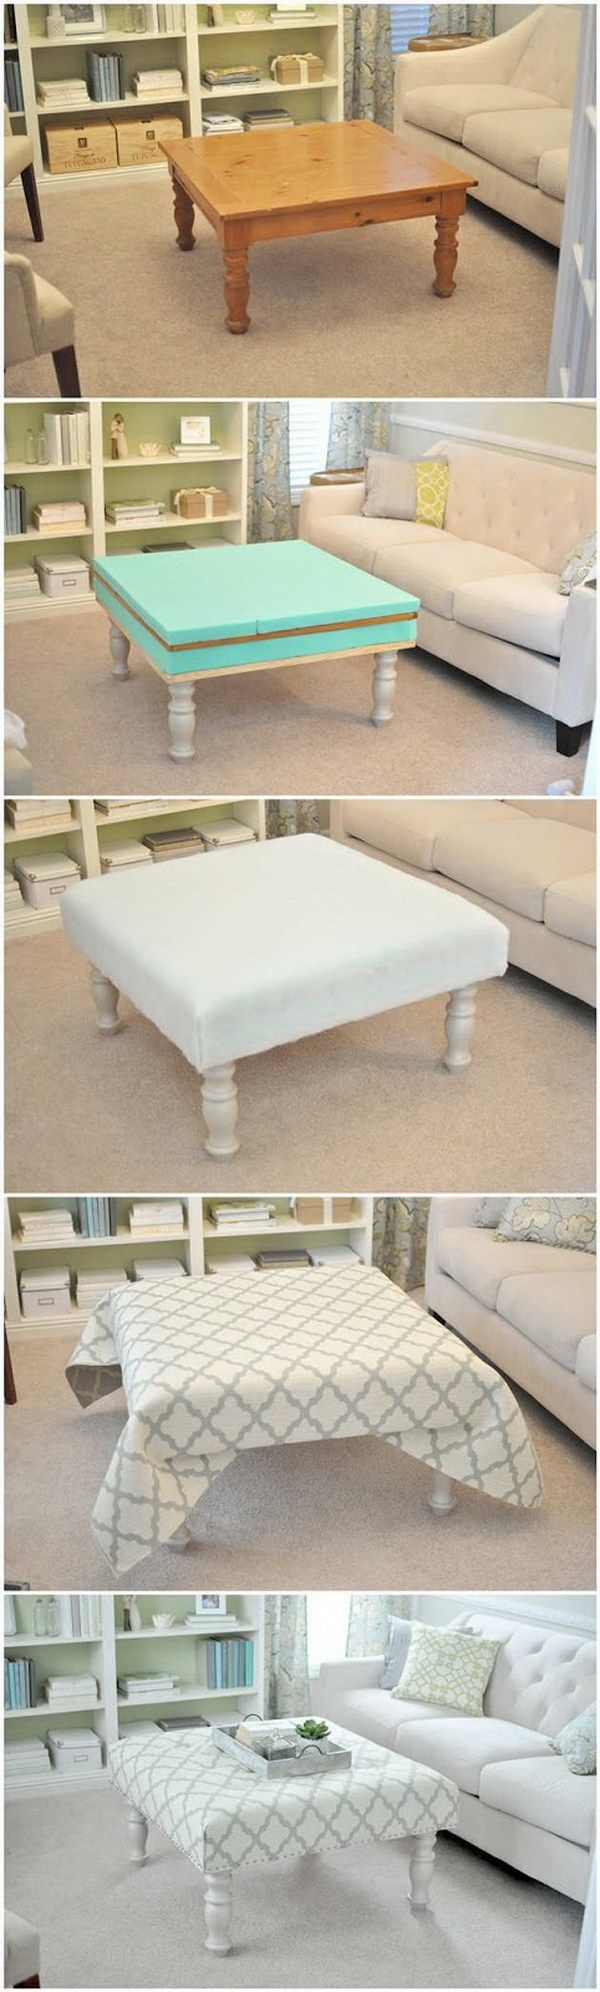 DIY Upholstered Coffee Table Ottoman: This upholstered coffee table ottoman looks so beautiful and awesome and adds more comfort and style to your living space!